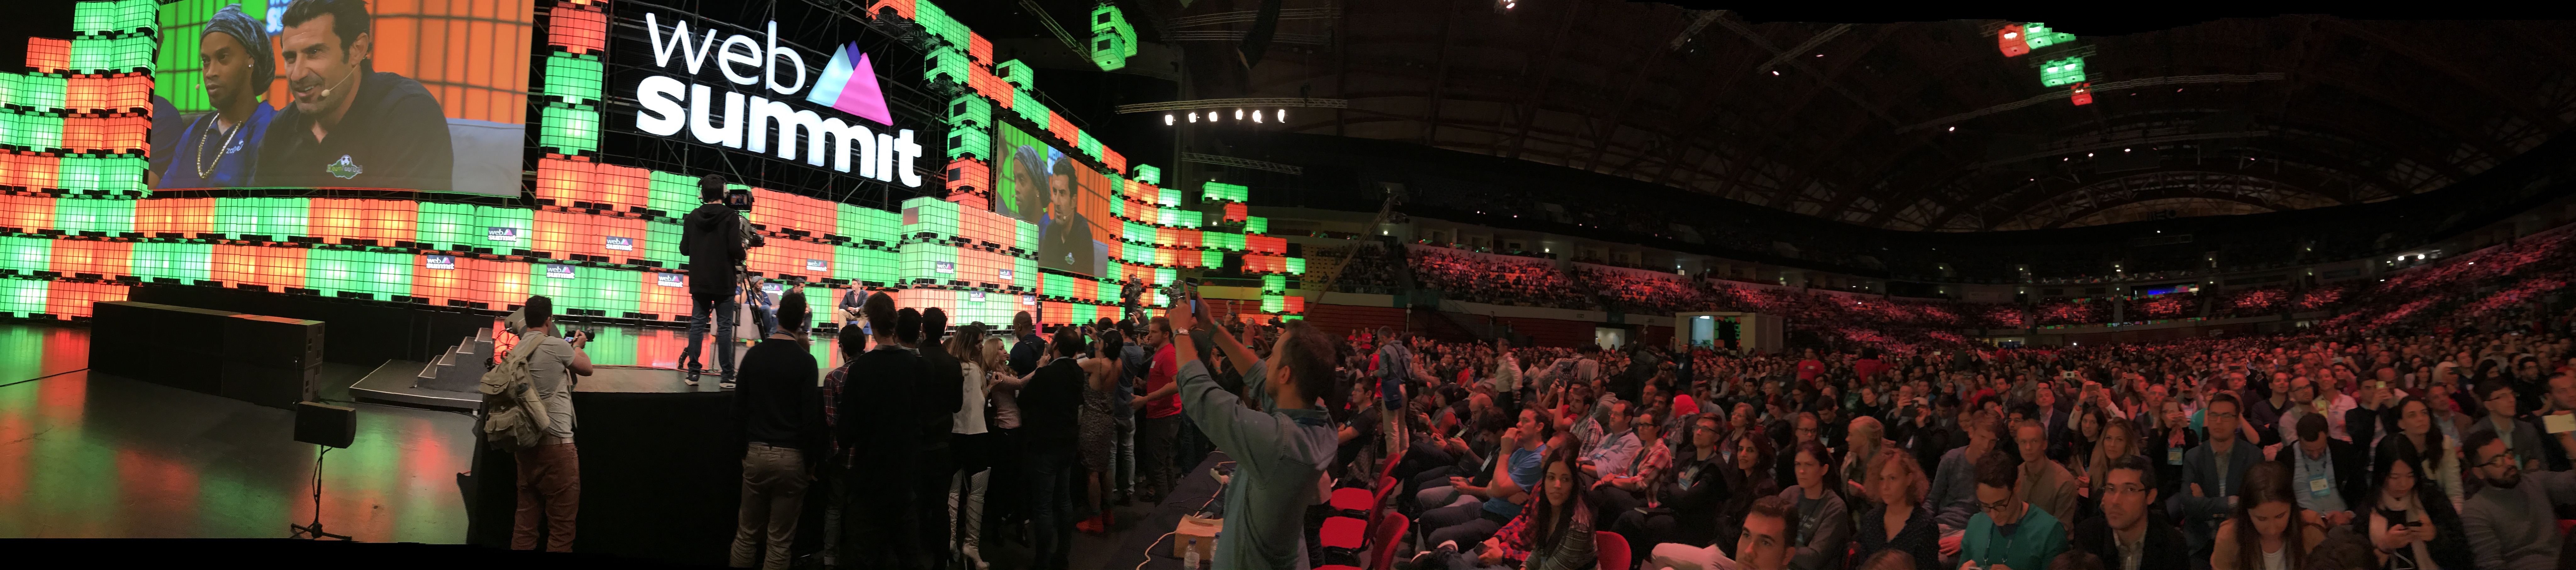 websummit-2016-lisbon-panoramic-picture